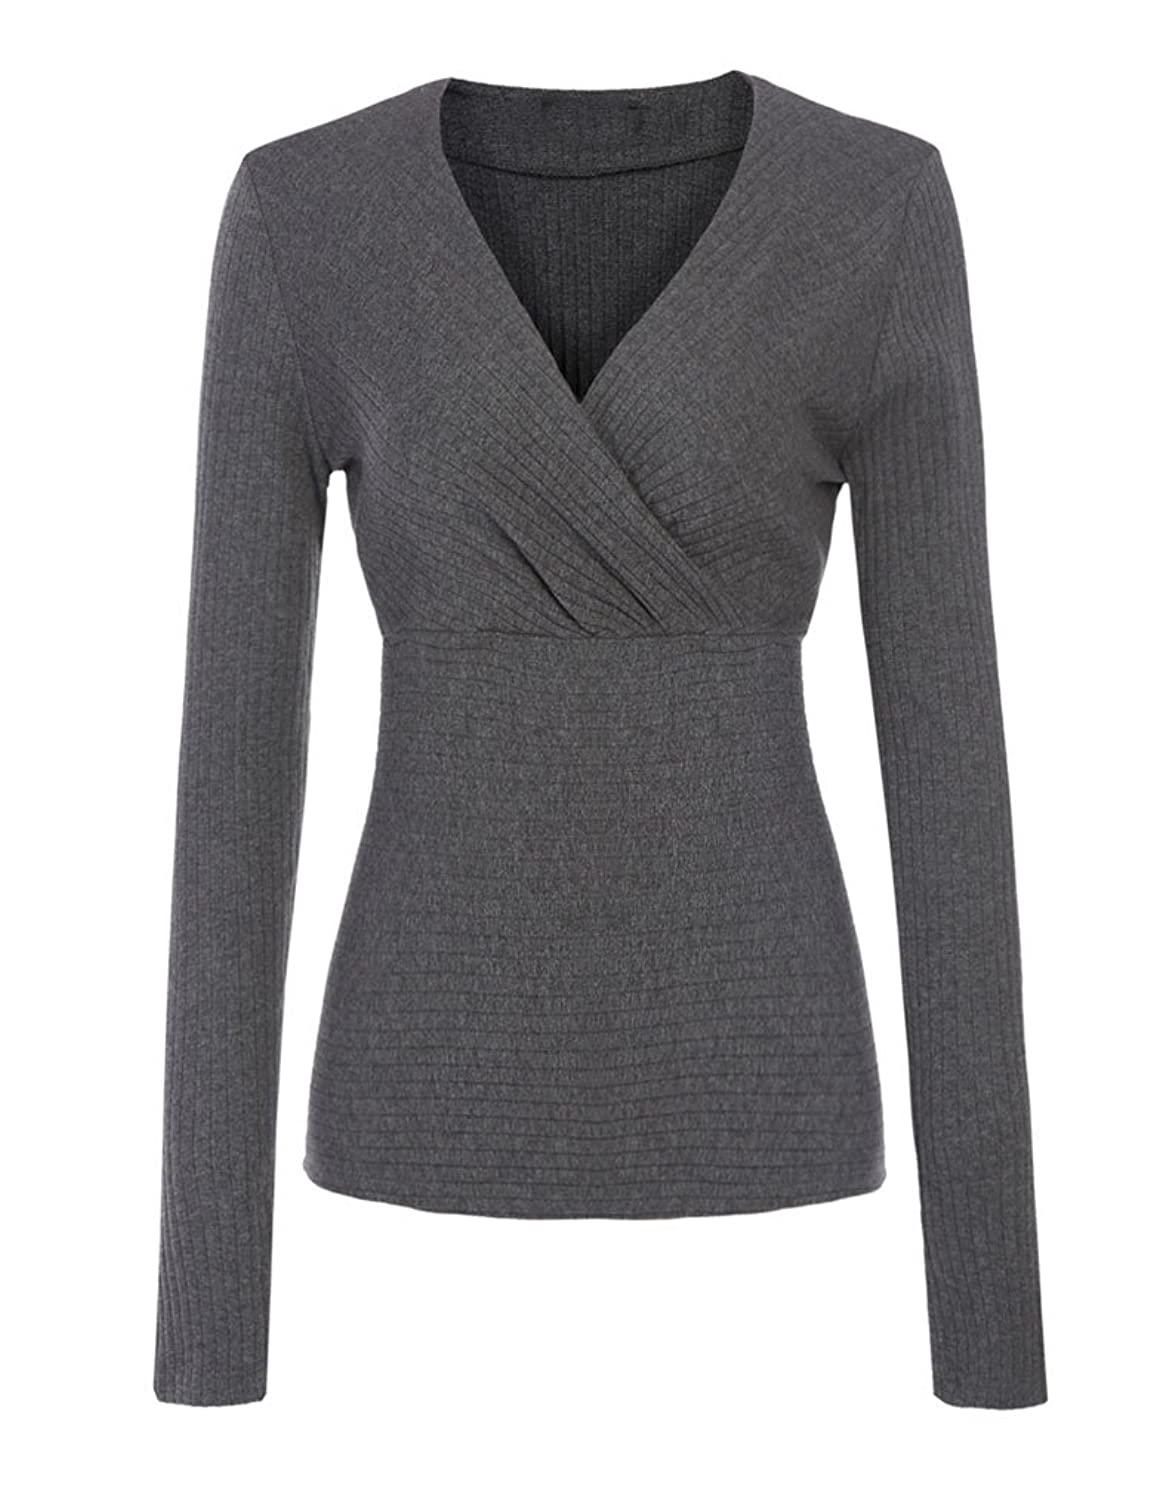 Qearal Women Cross Front V-Neck Solid Slim Fit Pullover Sweater Shirred Blouse Tops